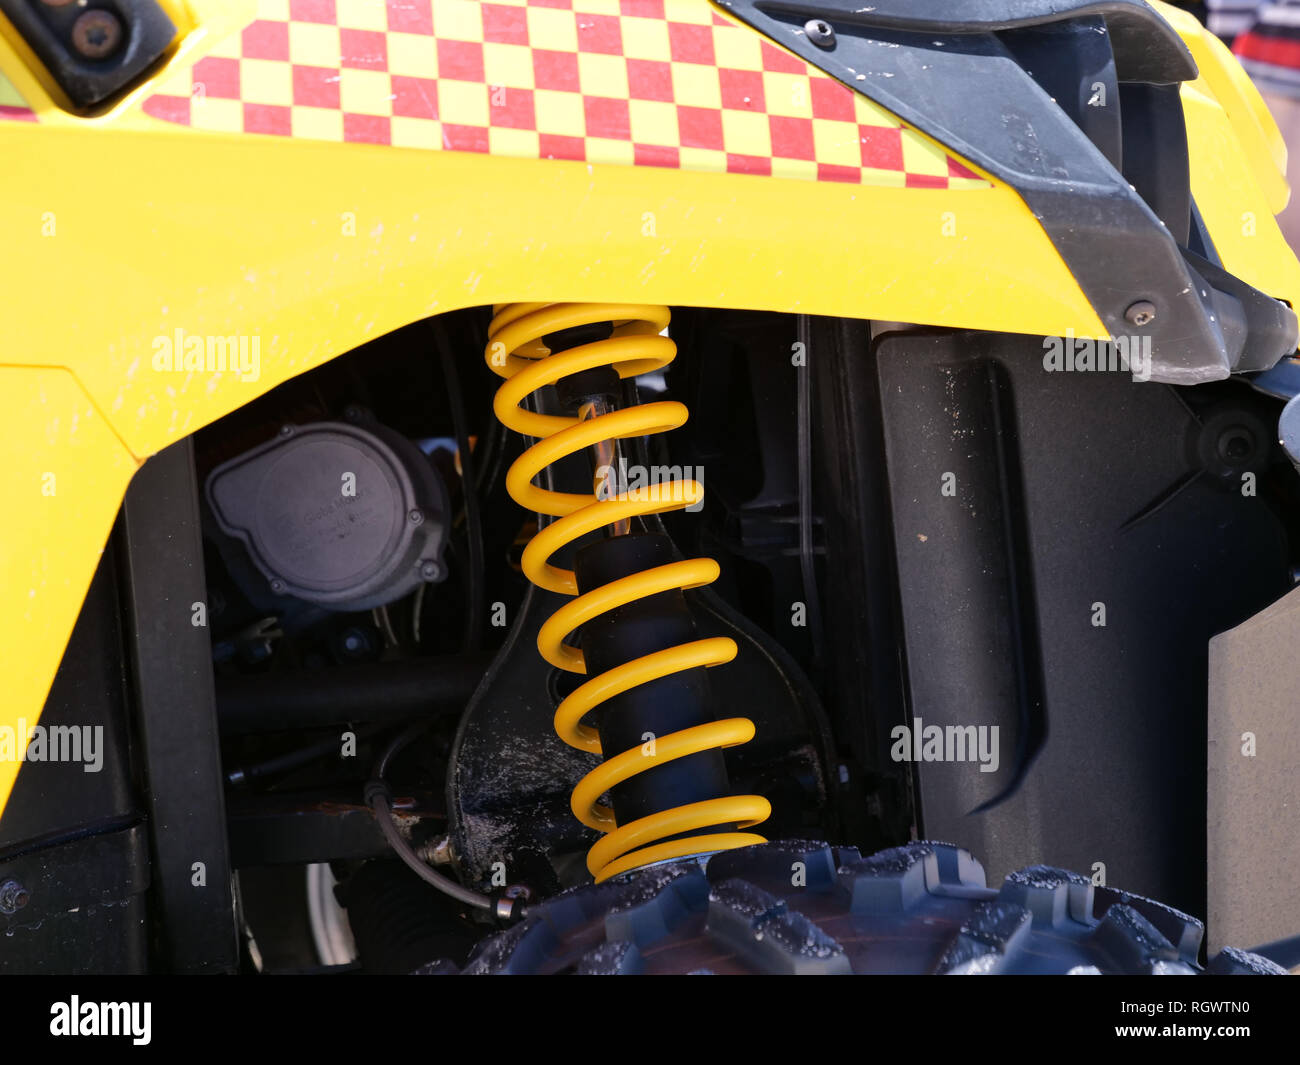 Details of a yellow coil spring attached to a safety and transport vehicle on the beach of the Yanchep, an Australian suburb north of Perth. Stock Photo